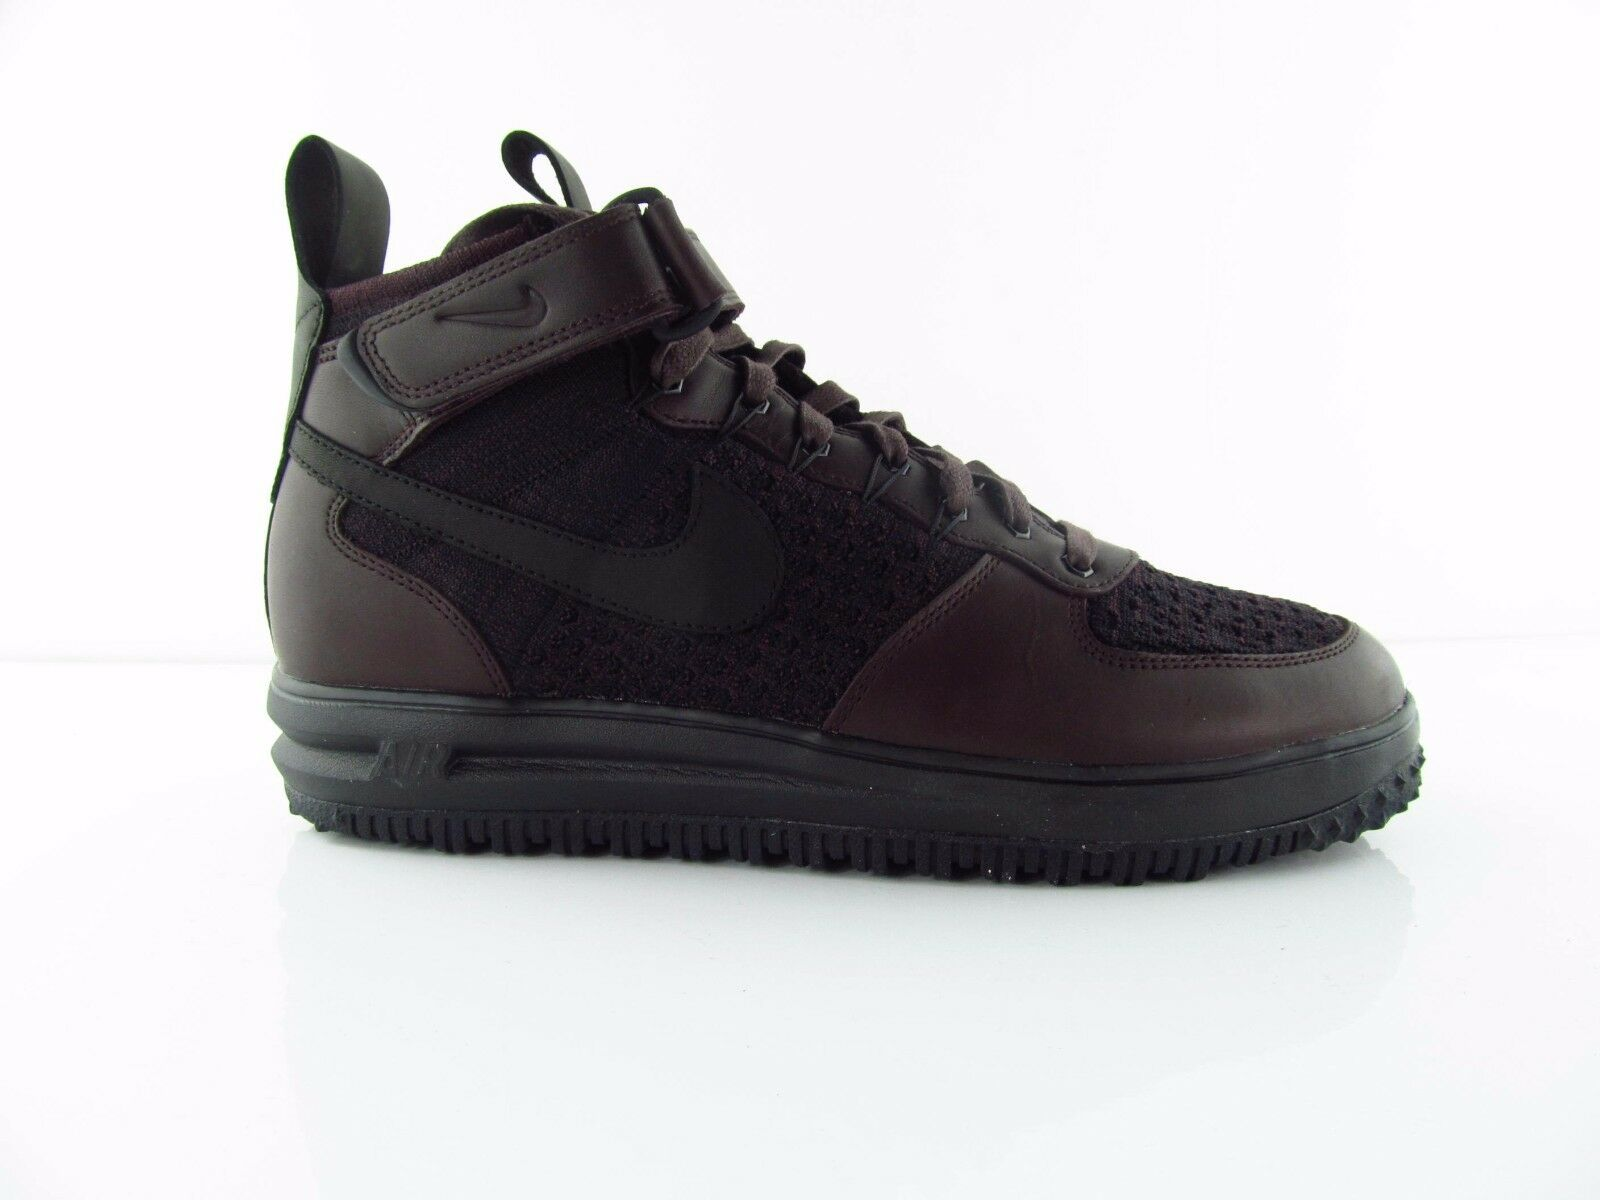 Nike Lunar Duckboot Force 1 Flyknit Workboot Duckboot Lunar US_11 UK_10 EUR_45 d97e1c